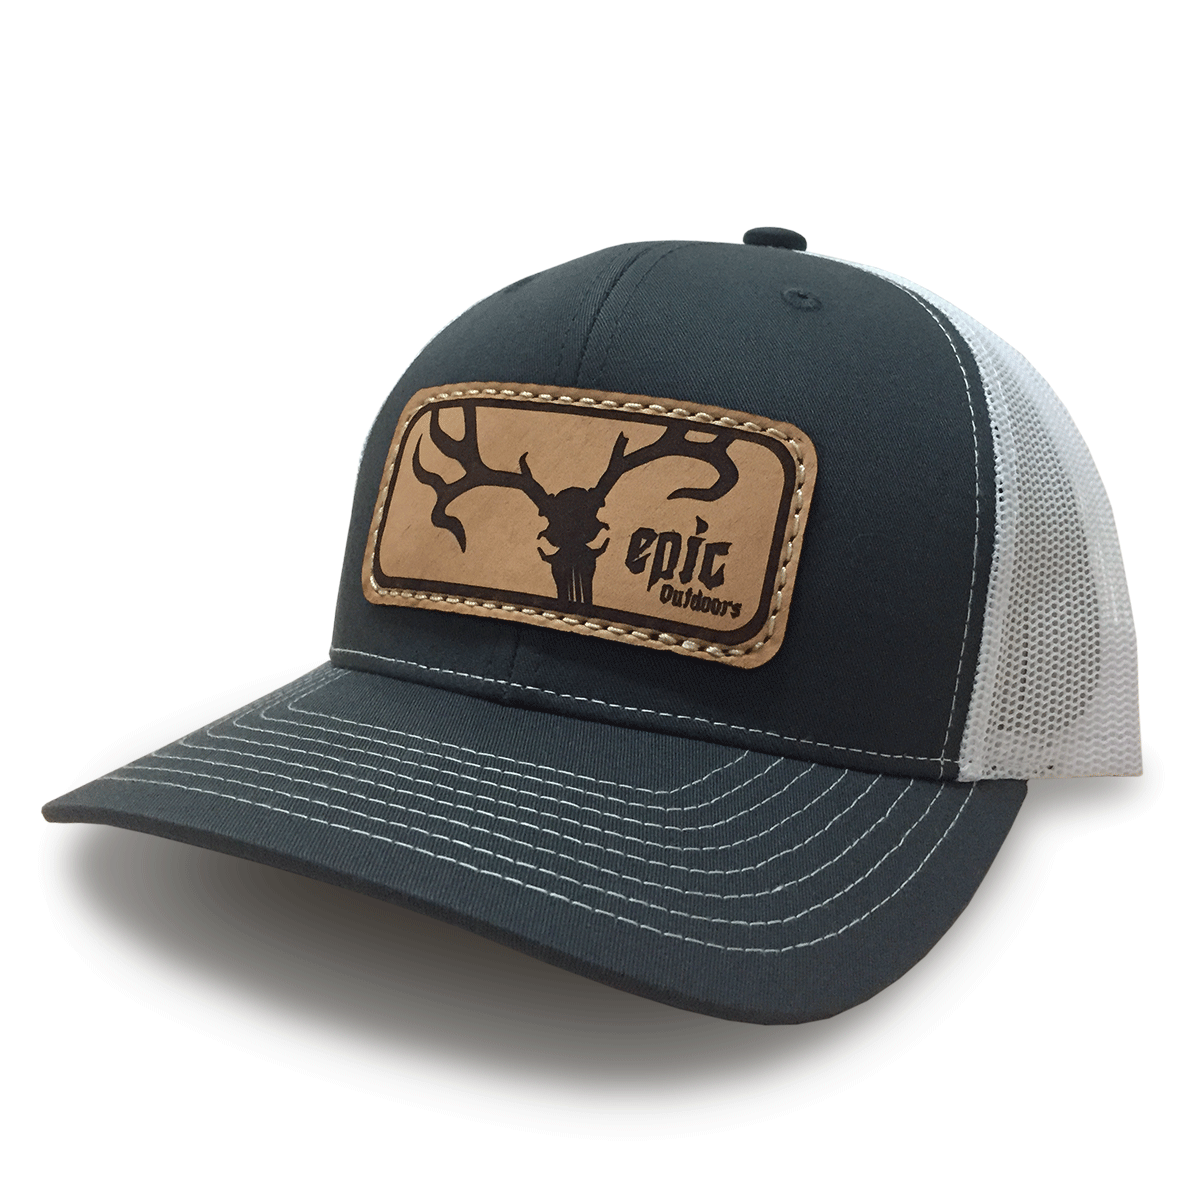 Epic Outdoors Authentic Leather Patch Trucker Hat 4e0d711eac0